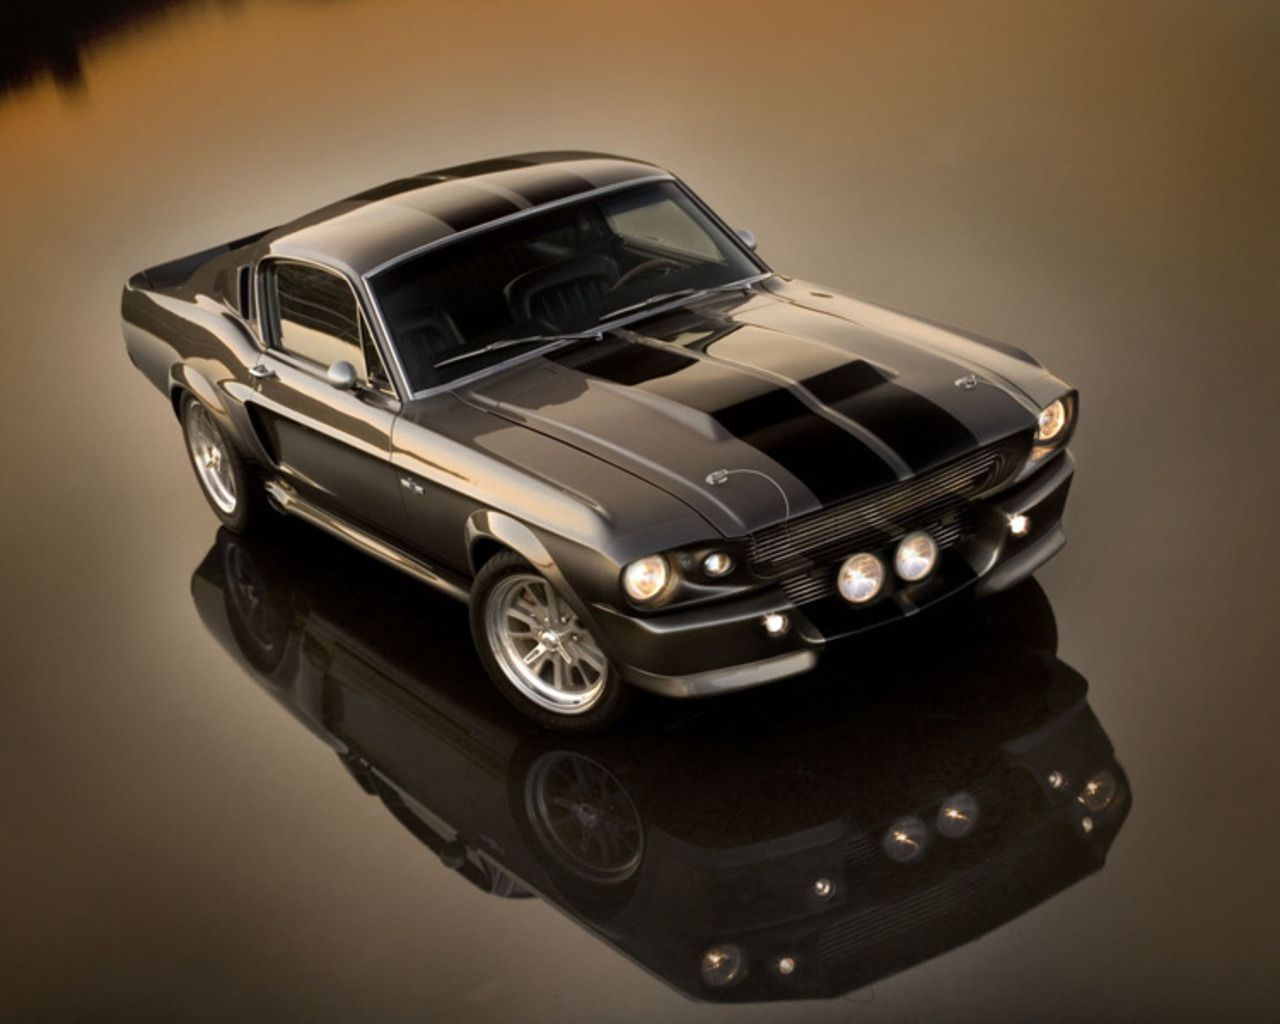 Mustang Wallpapers For Android Iphone And Ipad Ford Mustang